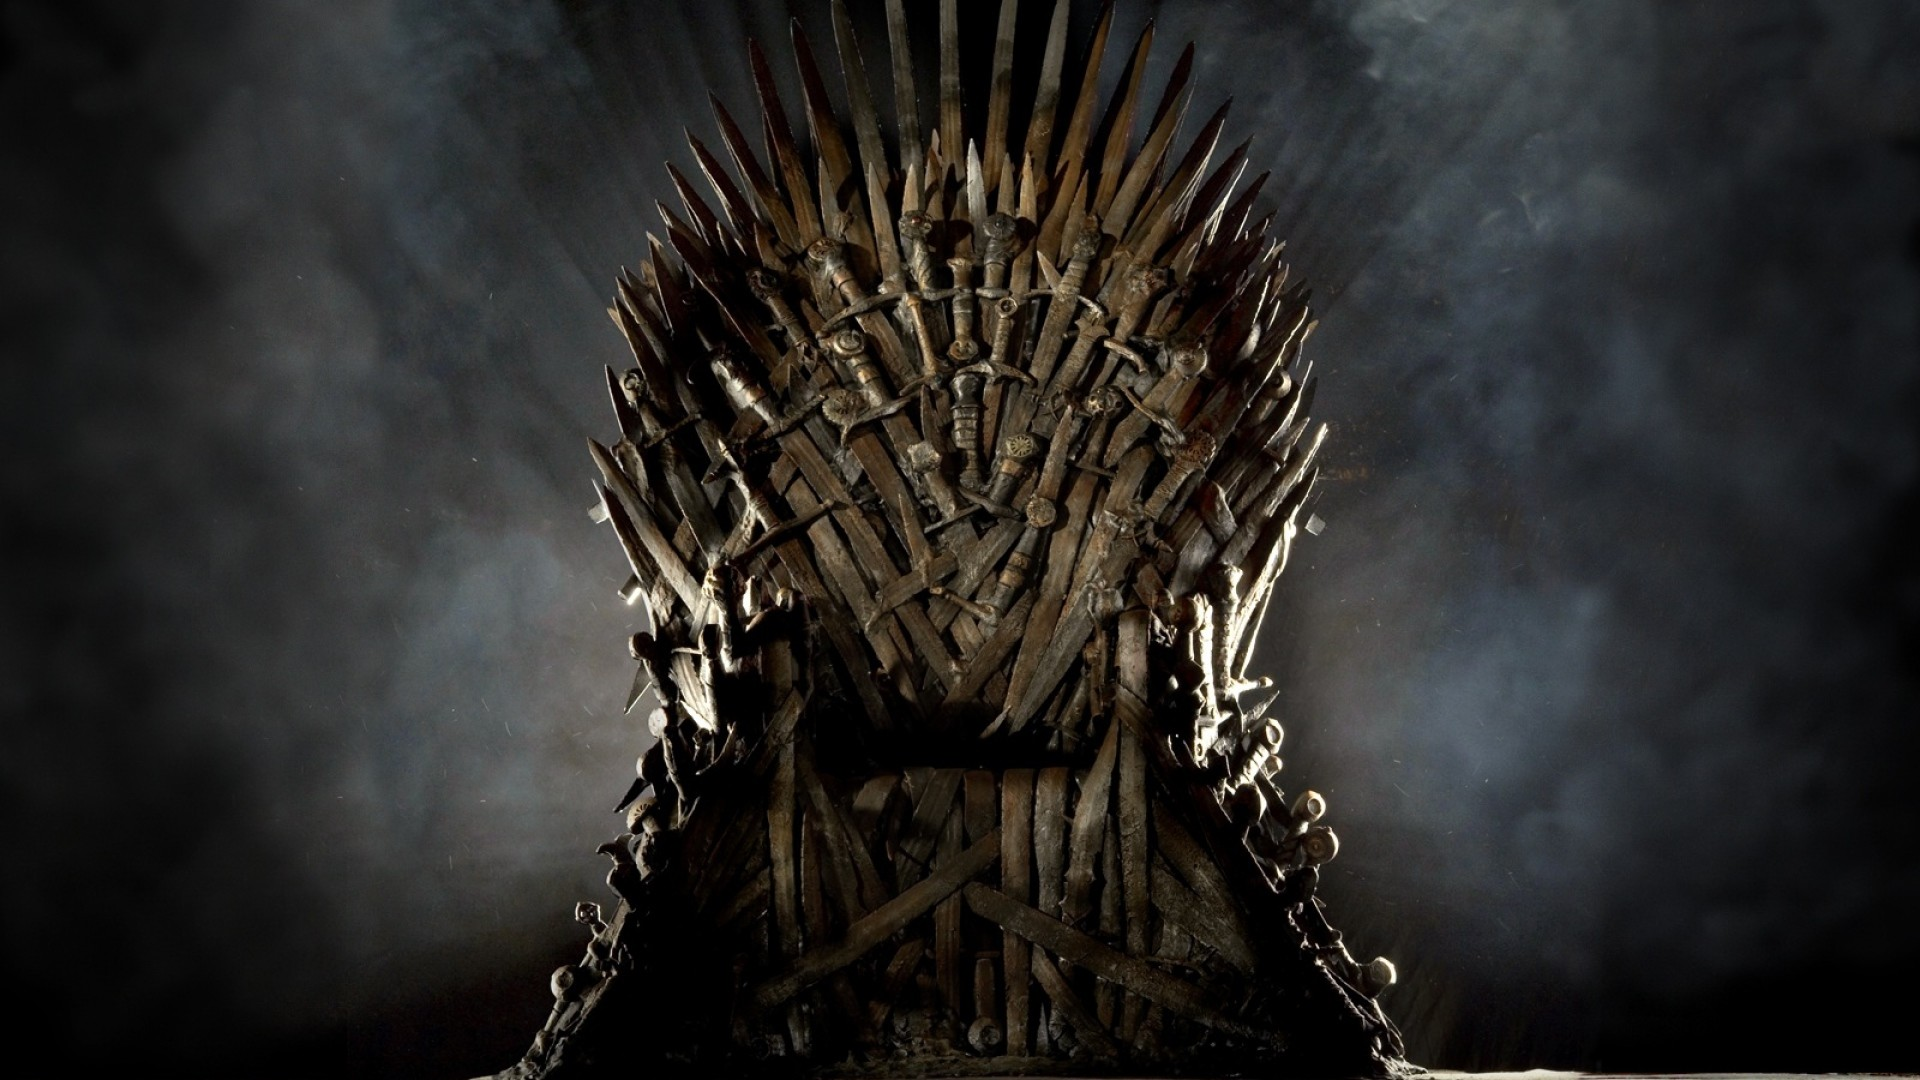 Game of Thrones HD Wallpaper | | ID:31347